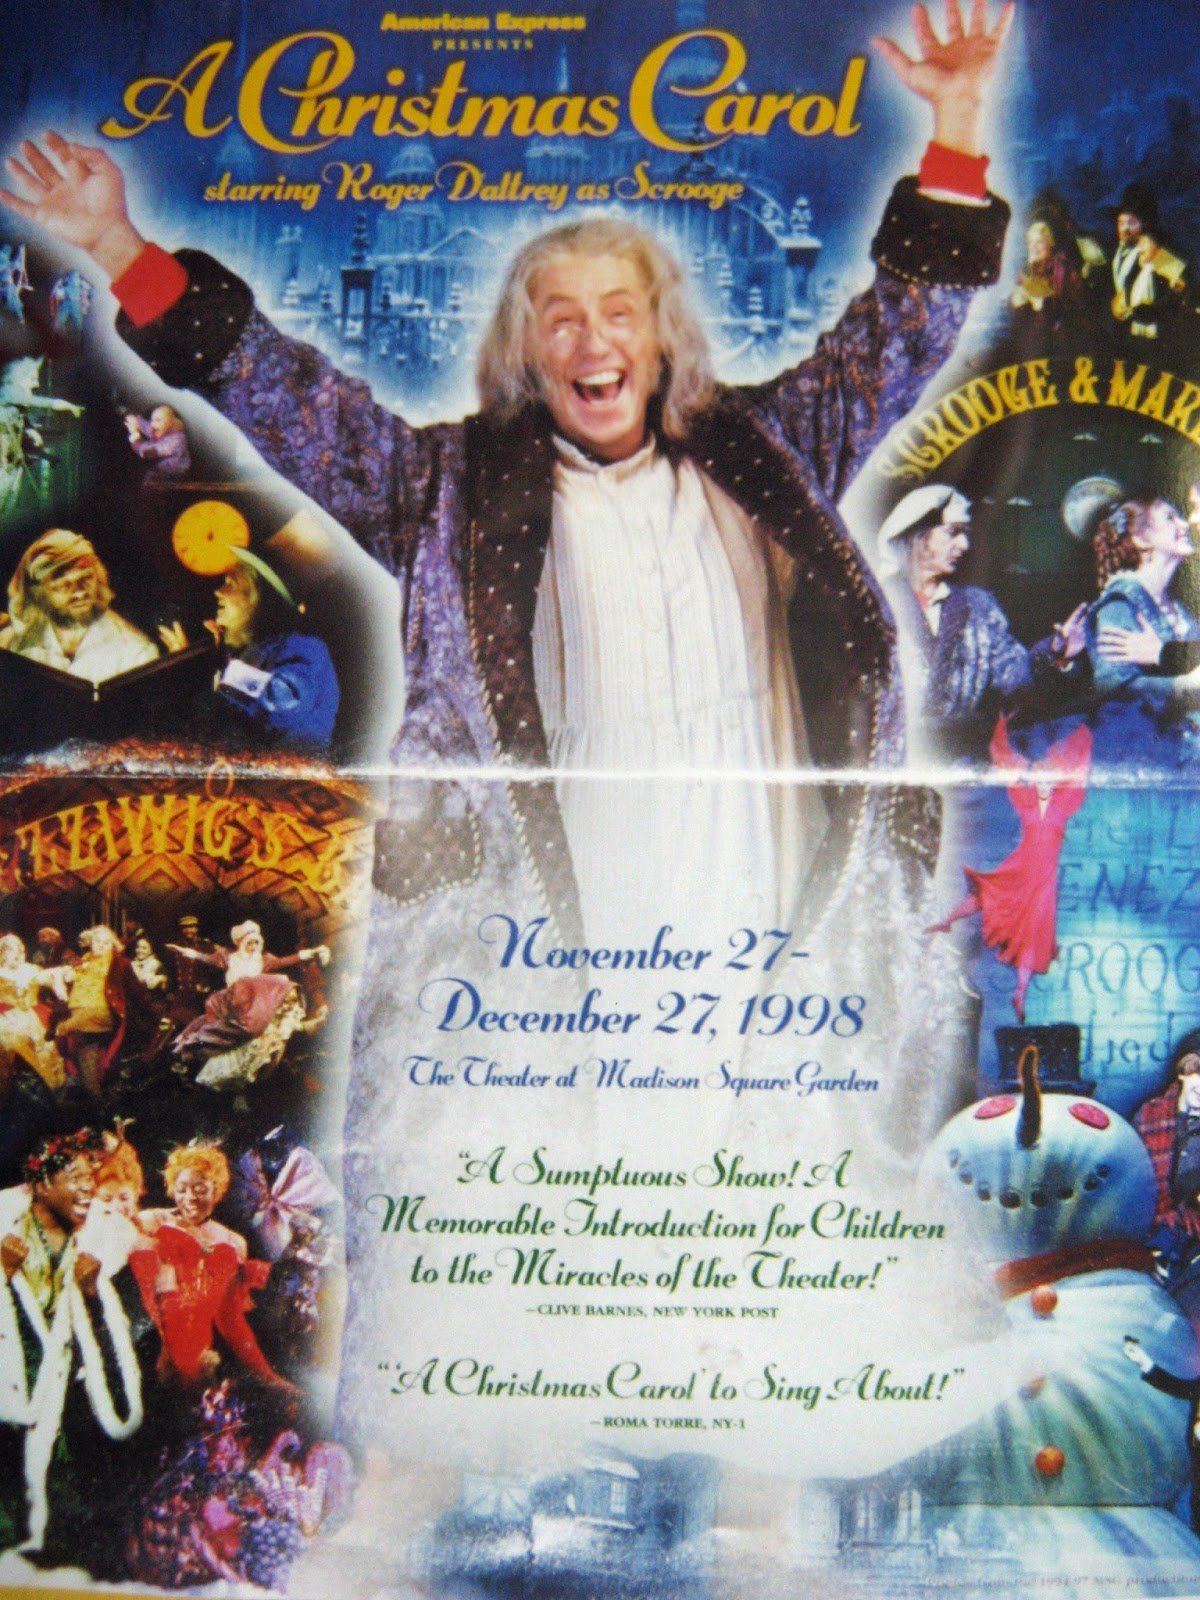 Roger Daltrey plays Scrooge in A Christmas Carol 1998